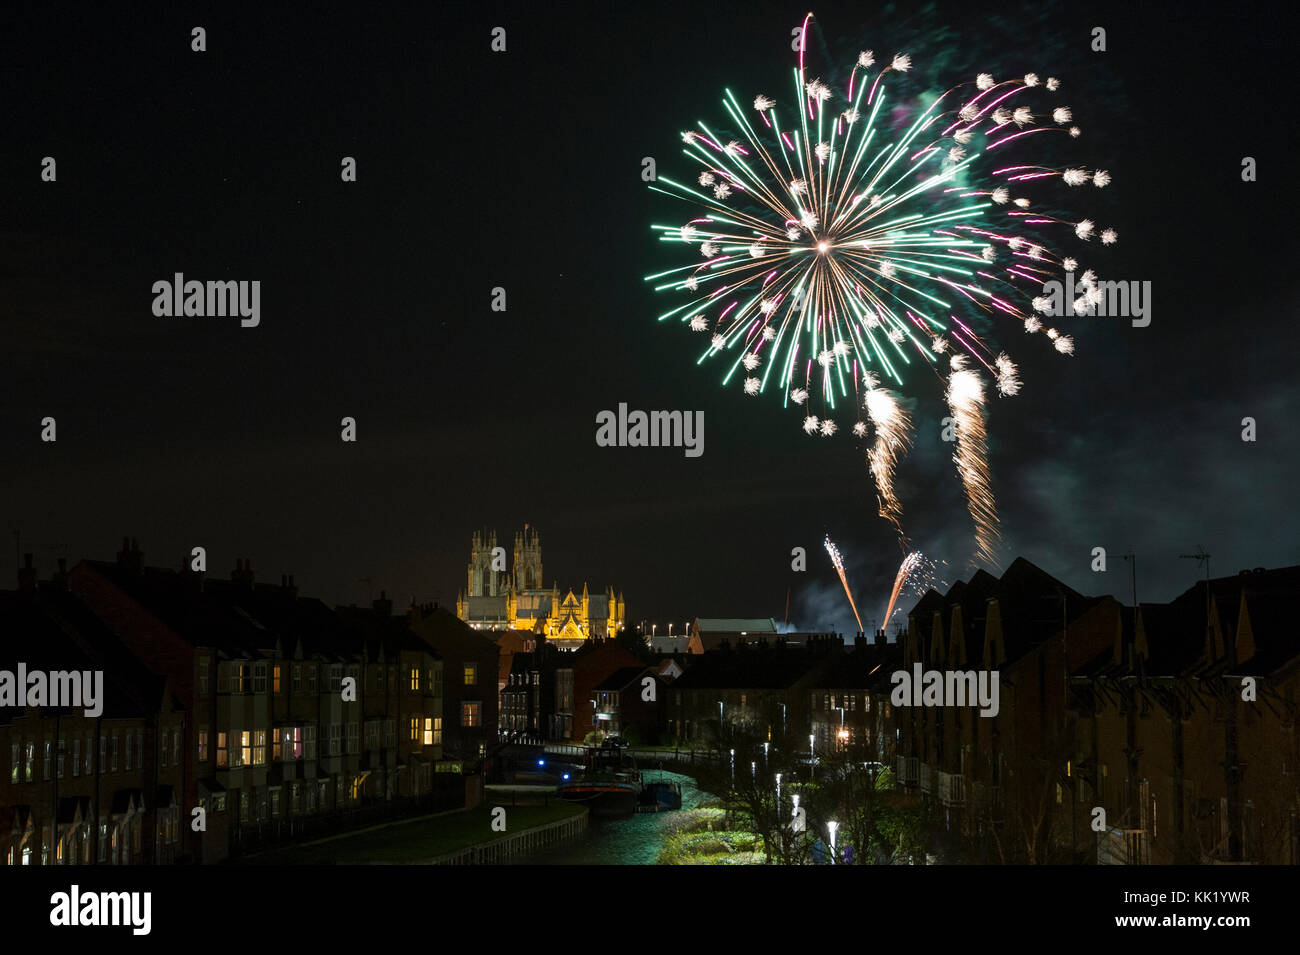 A Fireworks display in the skies over Beverley Minster in East Yorkshire to launch the Flemingate Christmas Lights - Stock Image